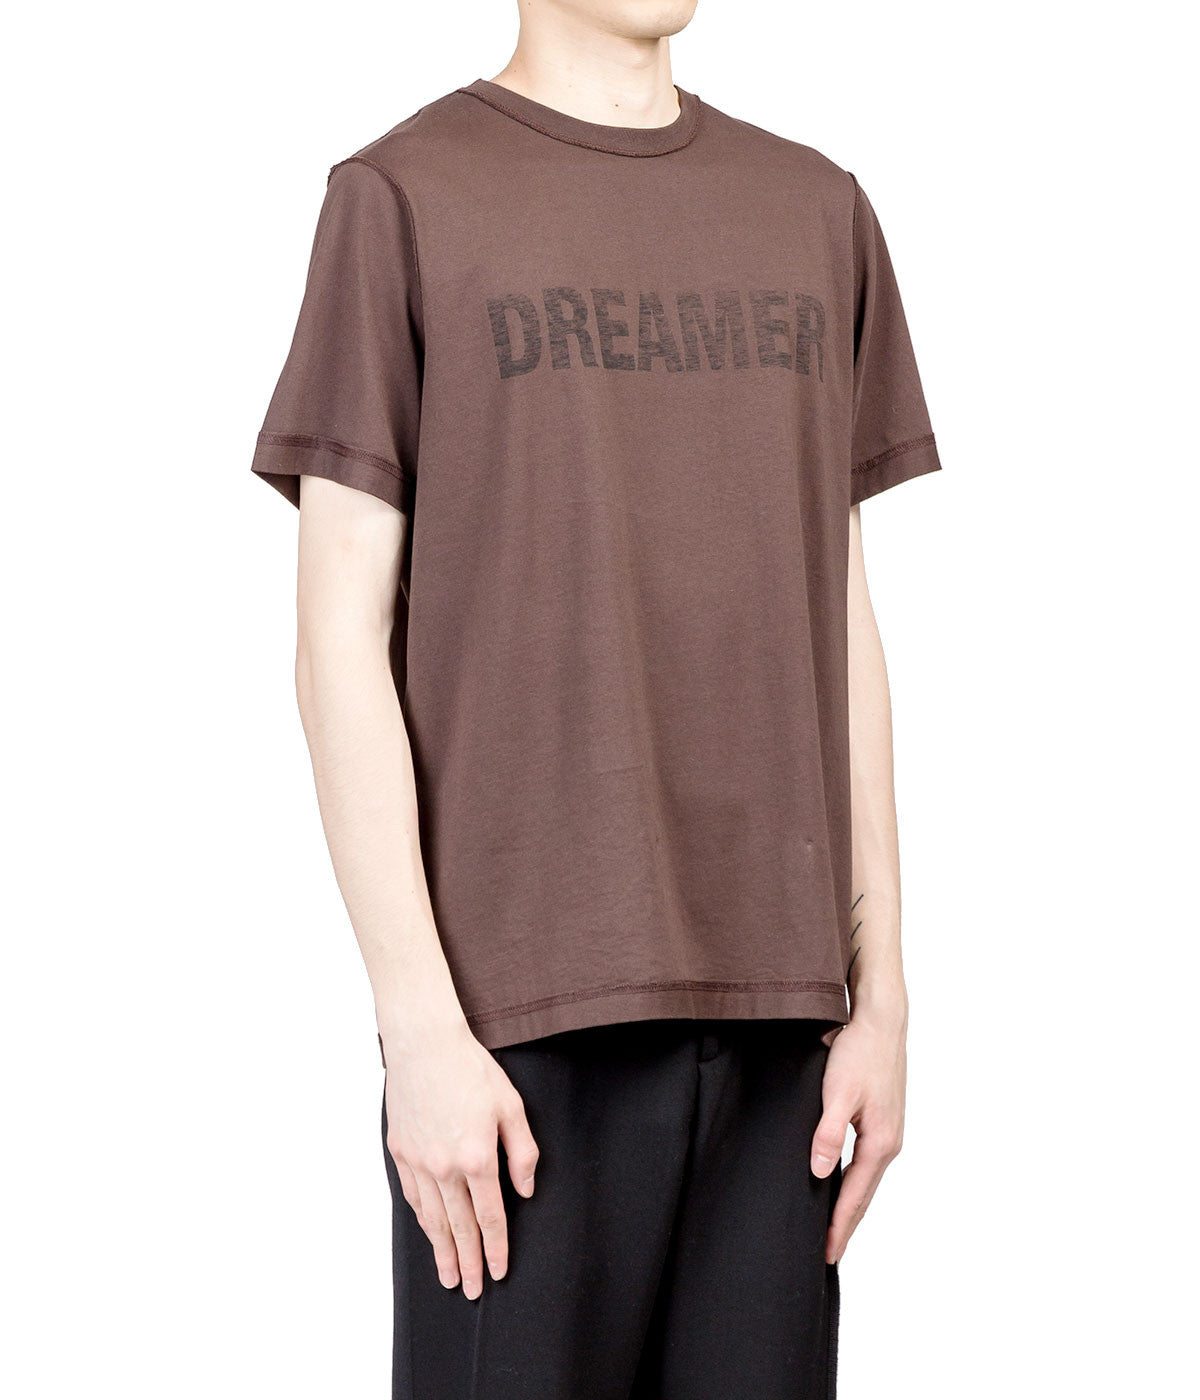 Brown 'Dreamer' T-shirt